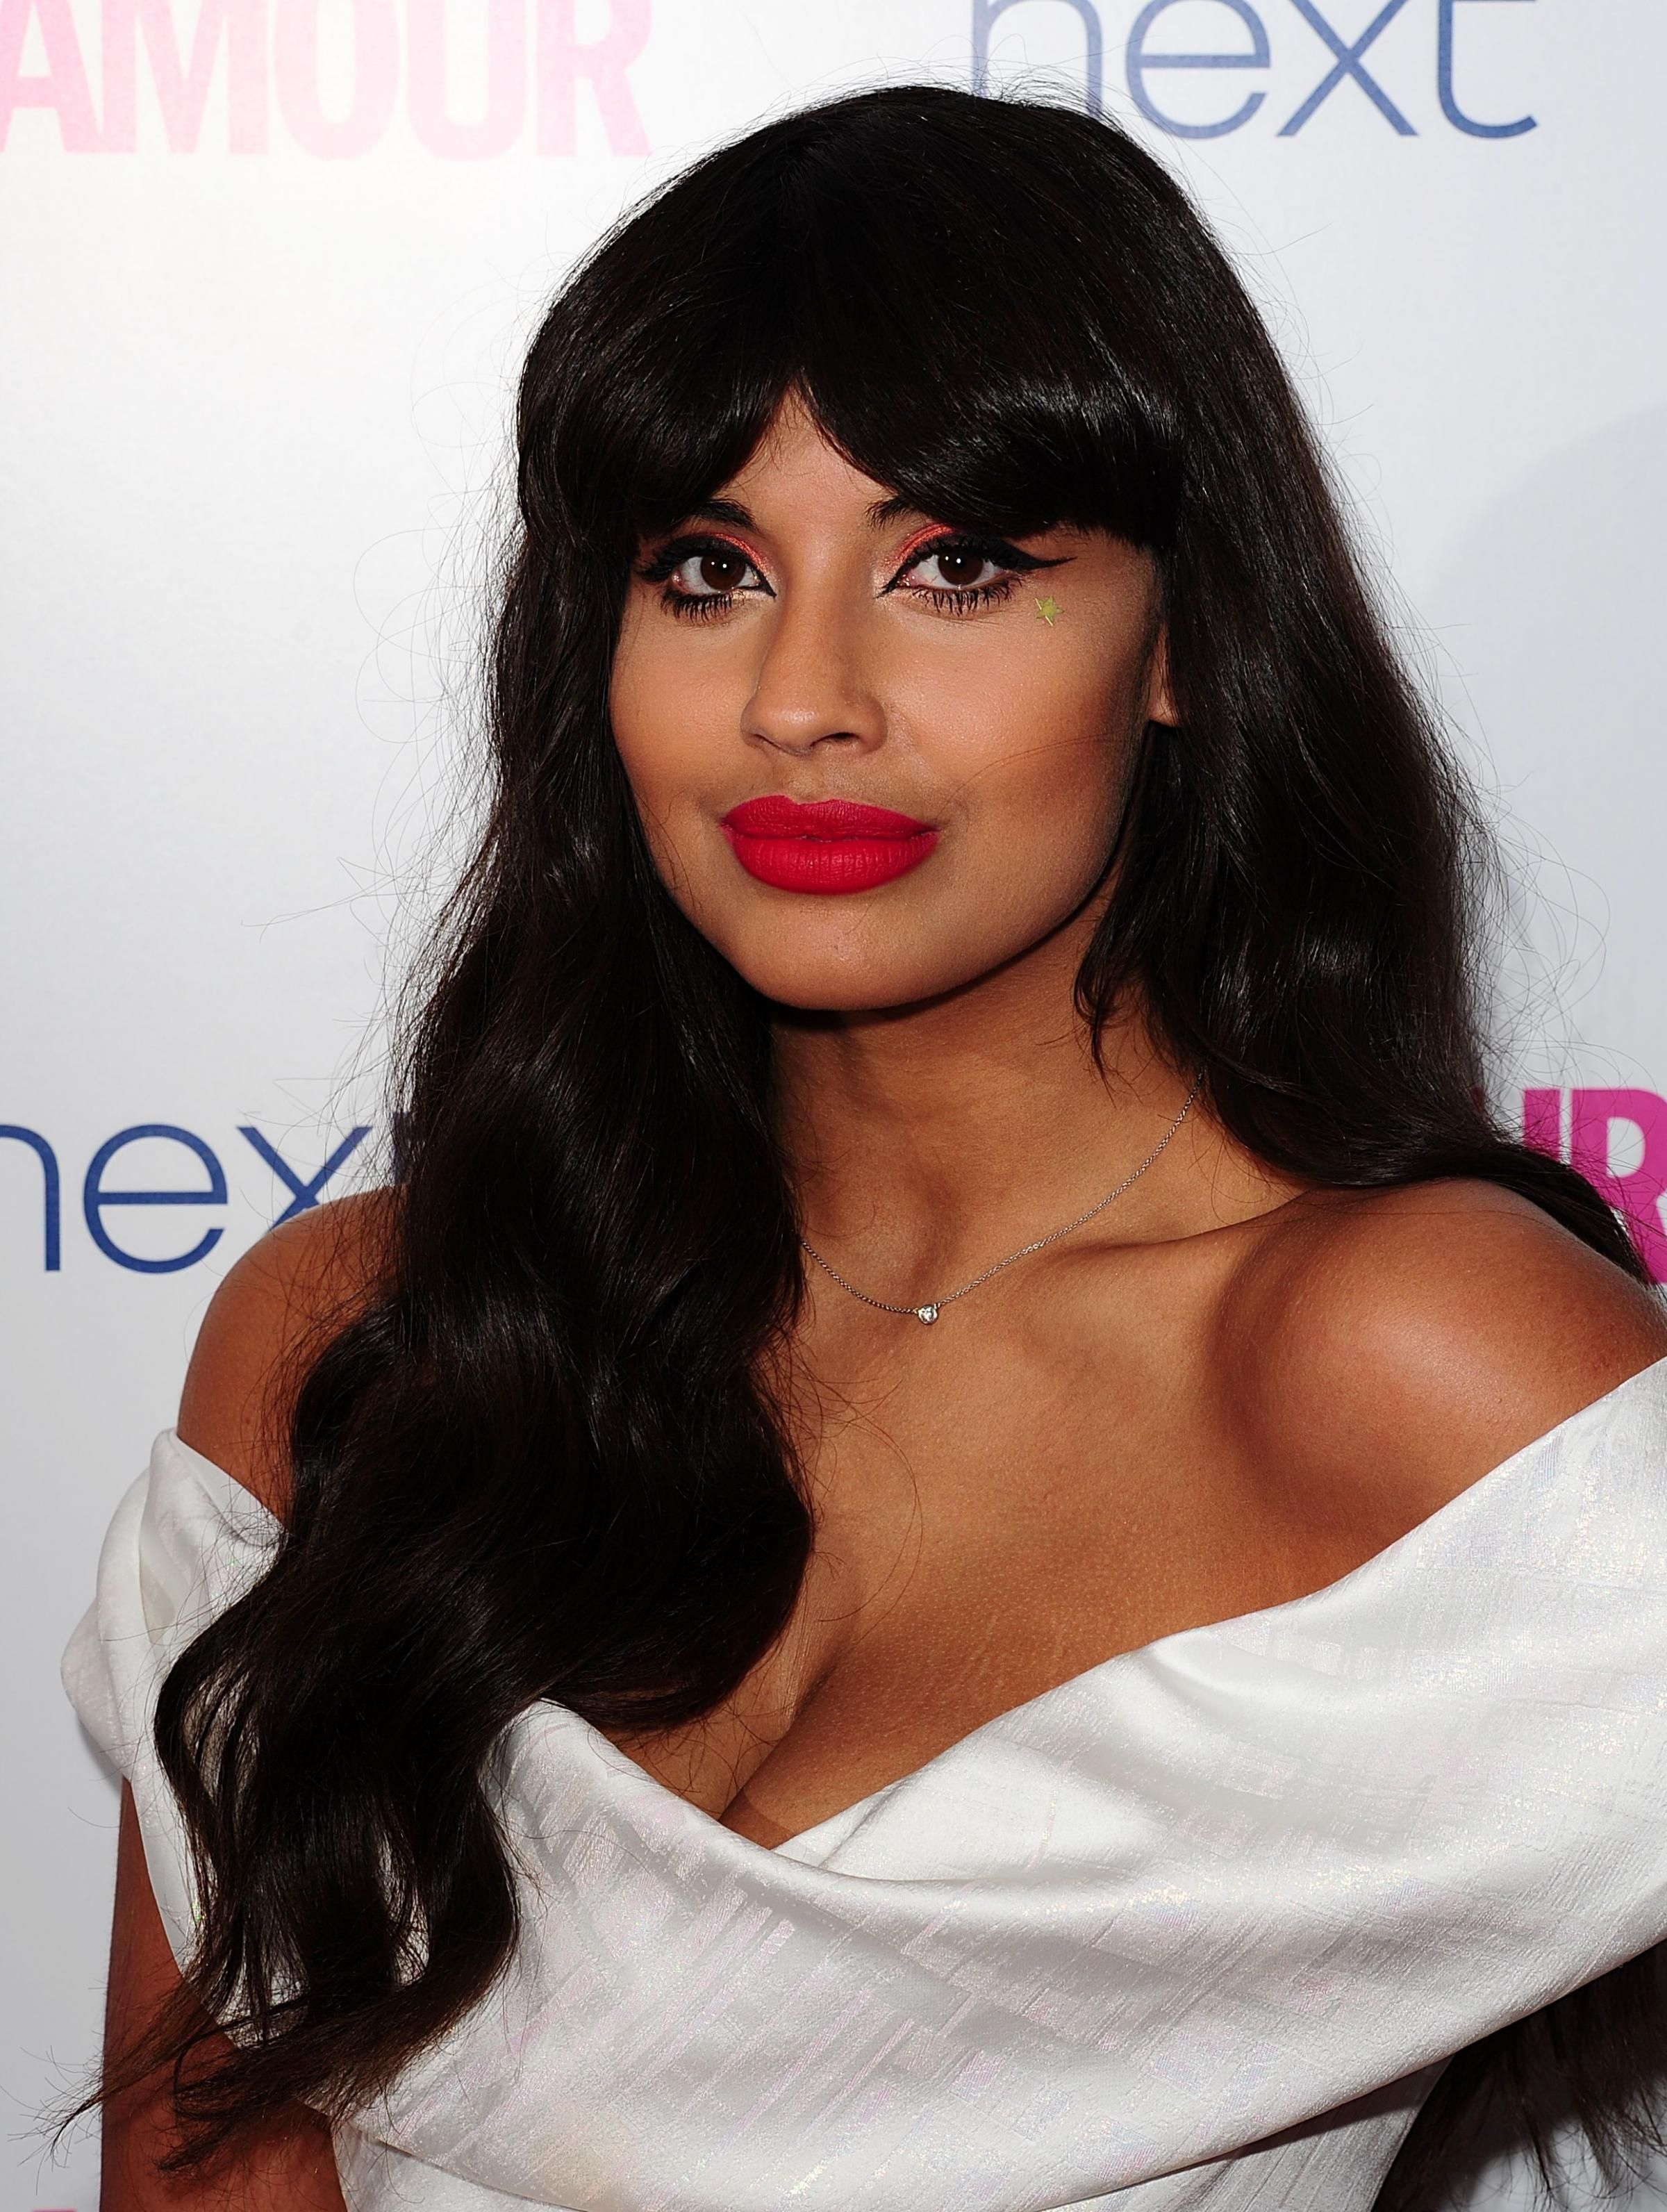 Jameela Jamil Calls For Body Confidence Education To Be On: Jameela Jamil Quits BBC Radio 1's Official Chart Show